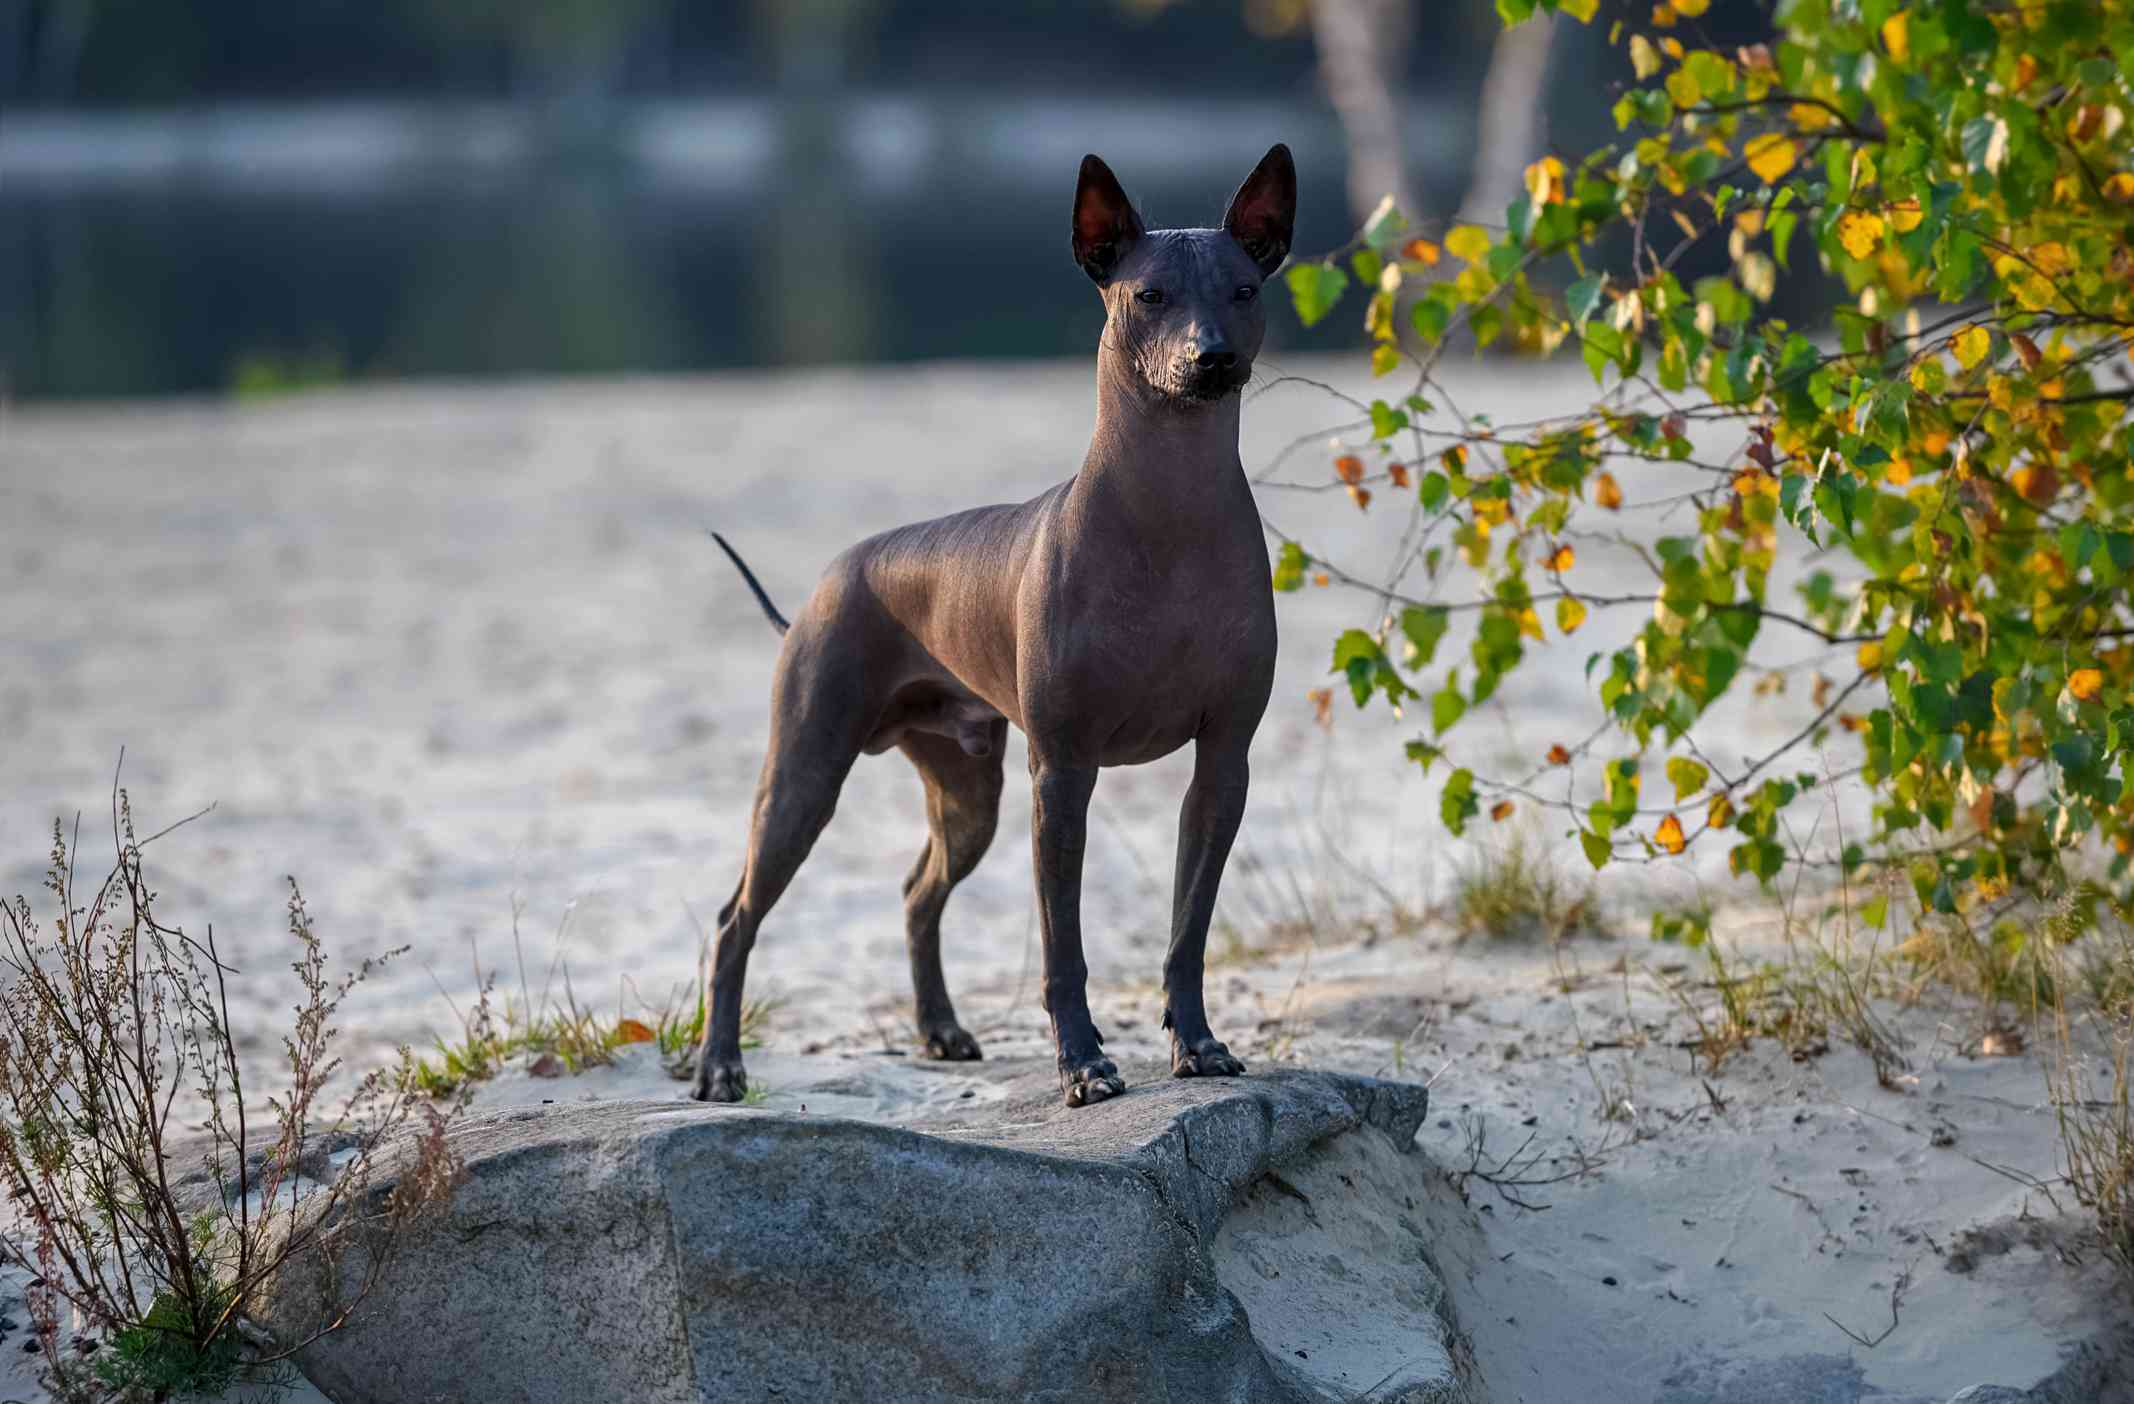 Xoloitzcuintle (Mexican Hairless Dog) standing on stone at sunset against beautiful natural landscape